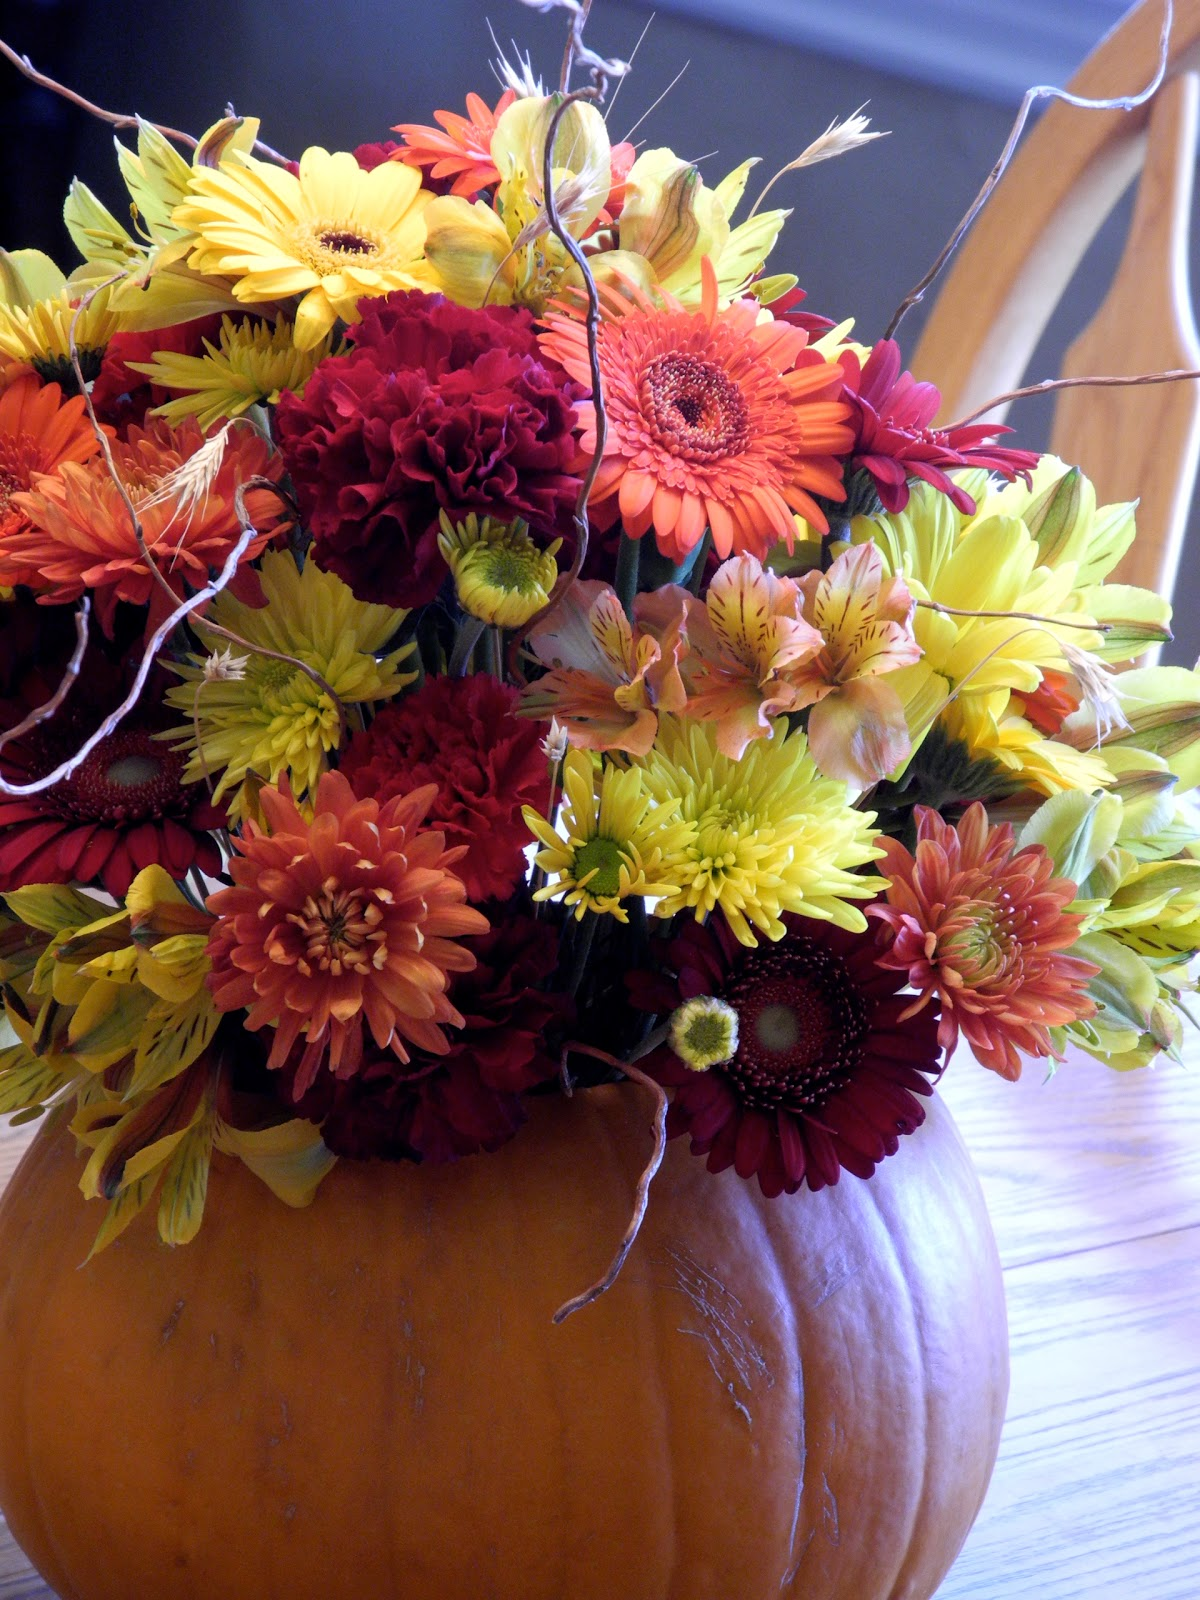 The Flower Girl Blog: fall flowers and a pumpkin